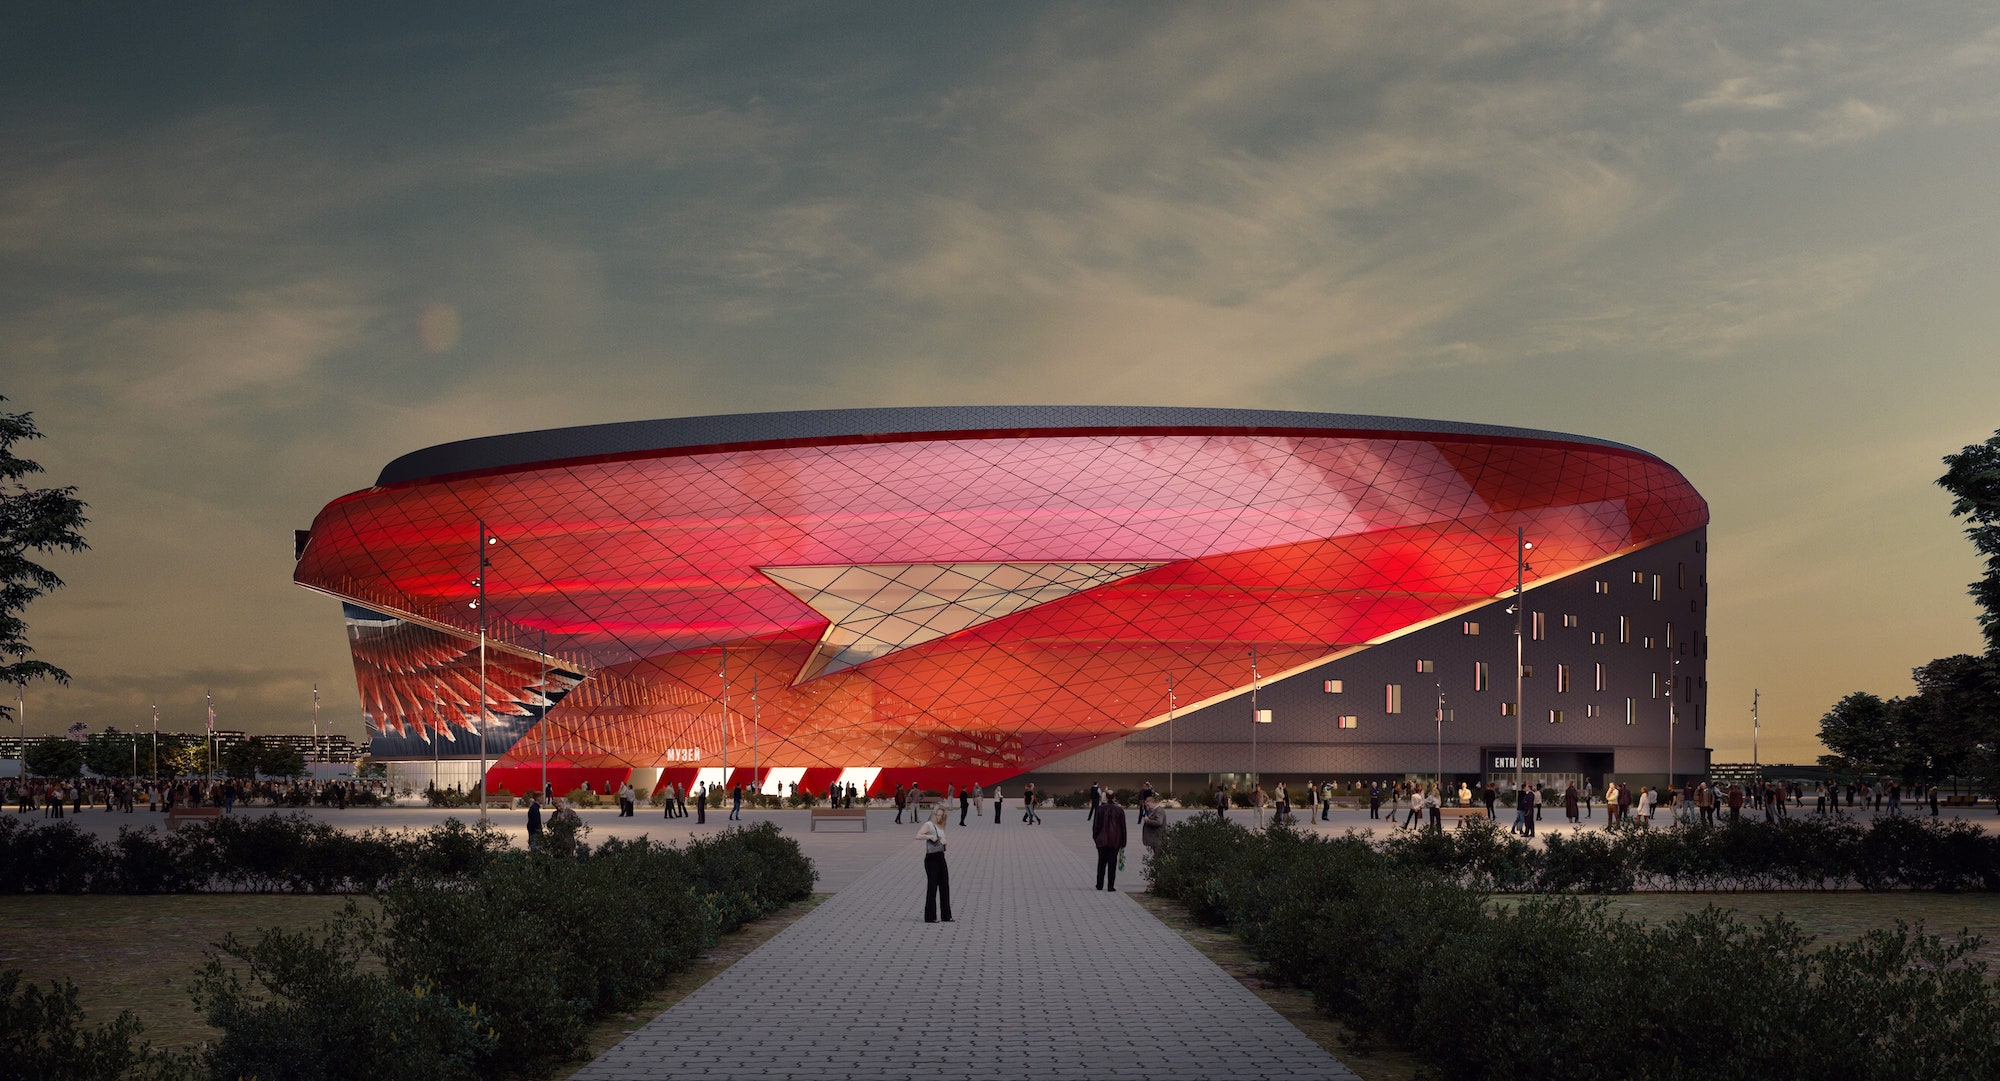 https://omsk-arena.ru/wp-content/themes/arena/images/main_good.jpg